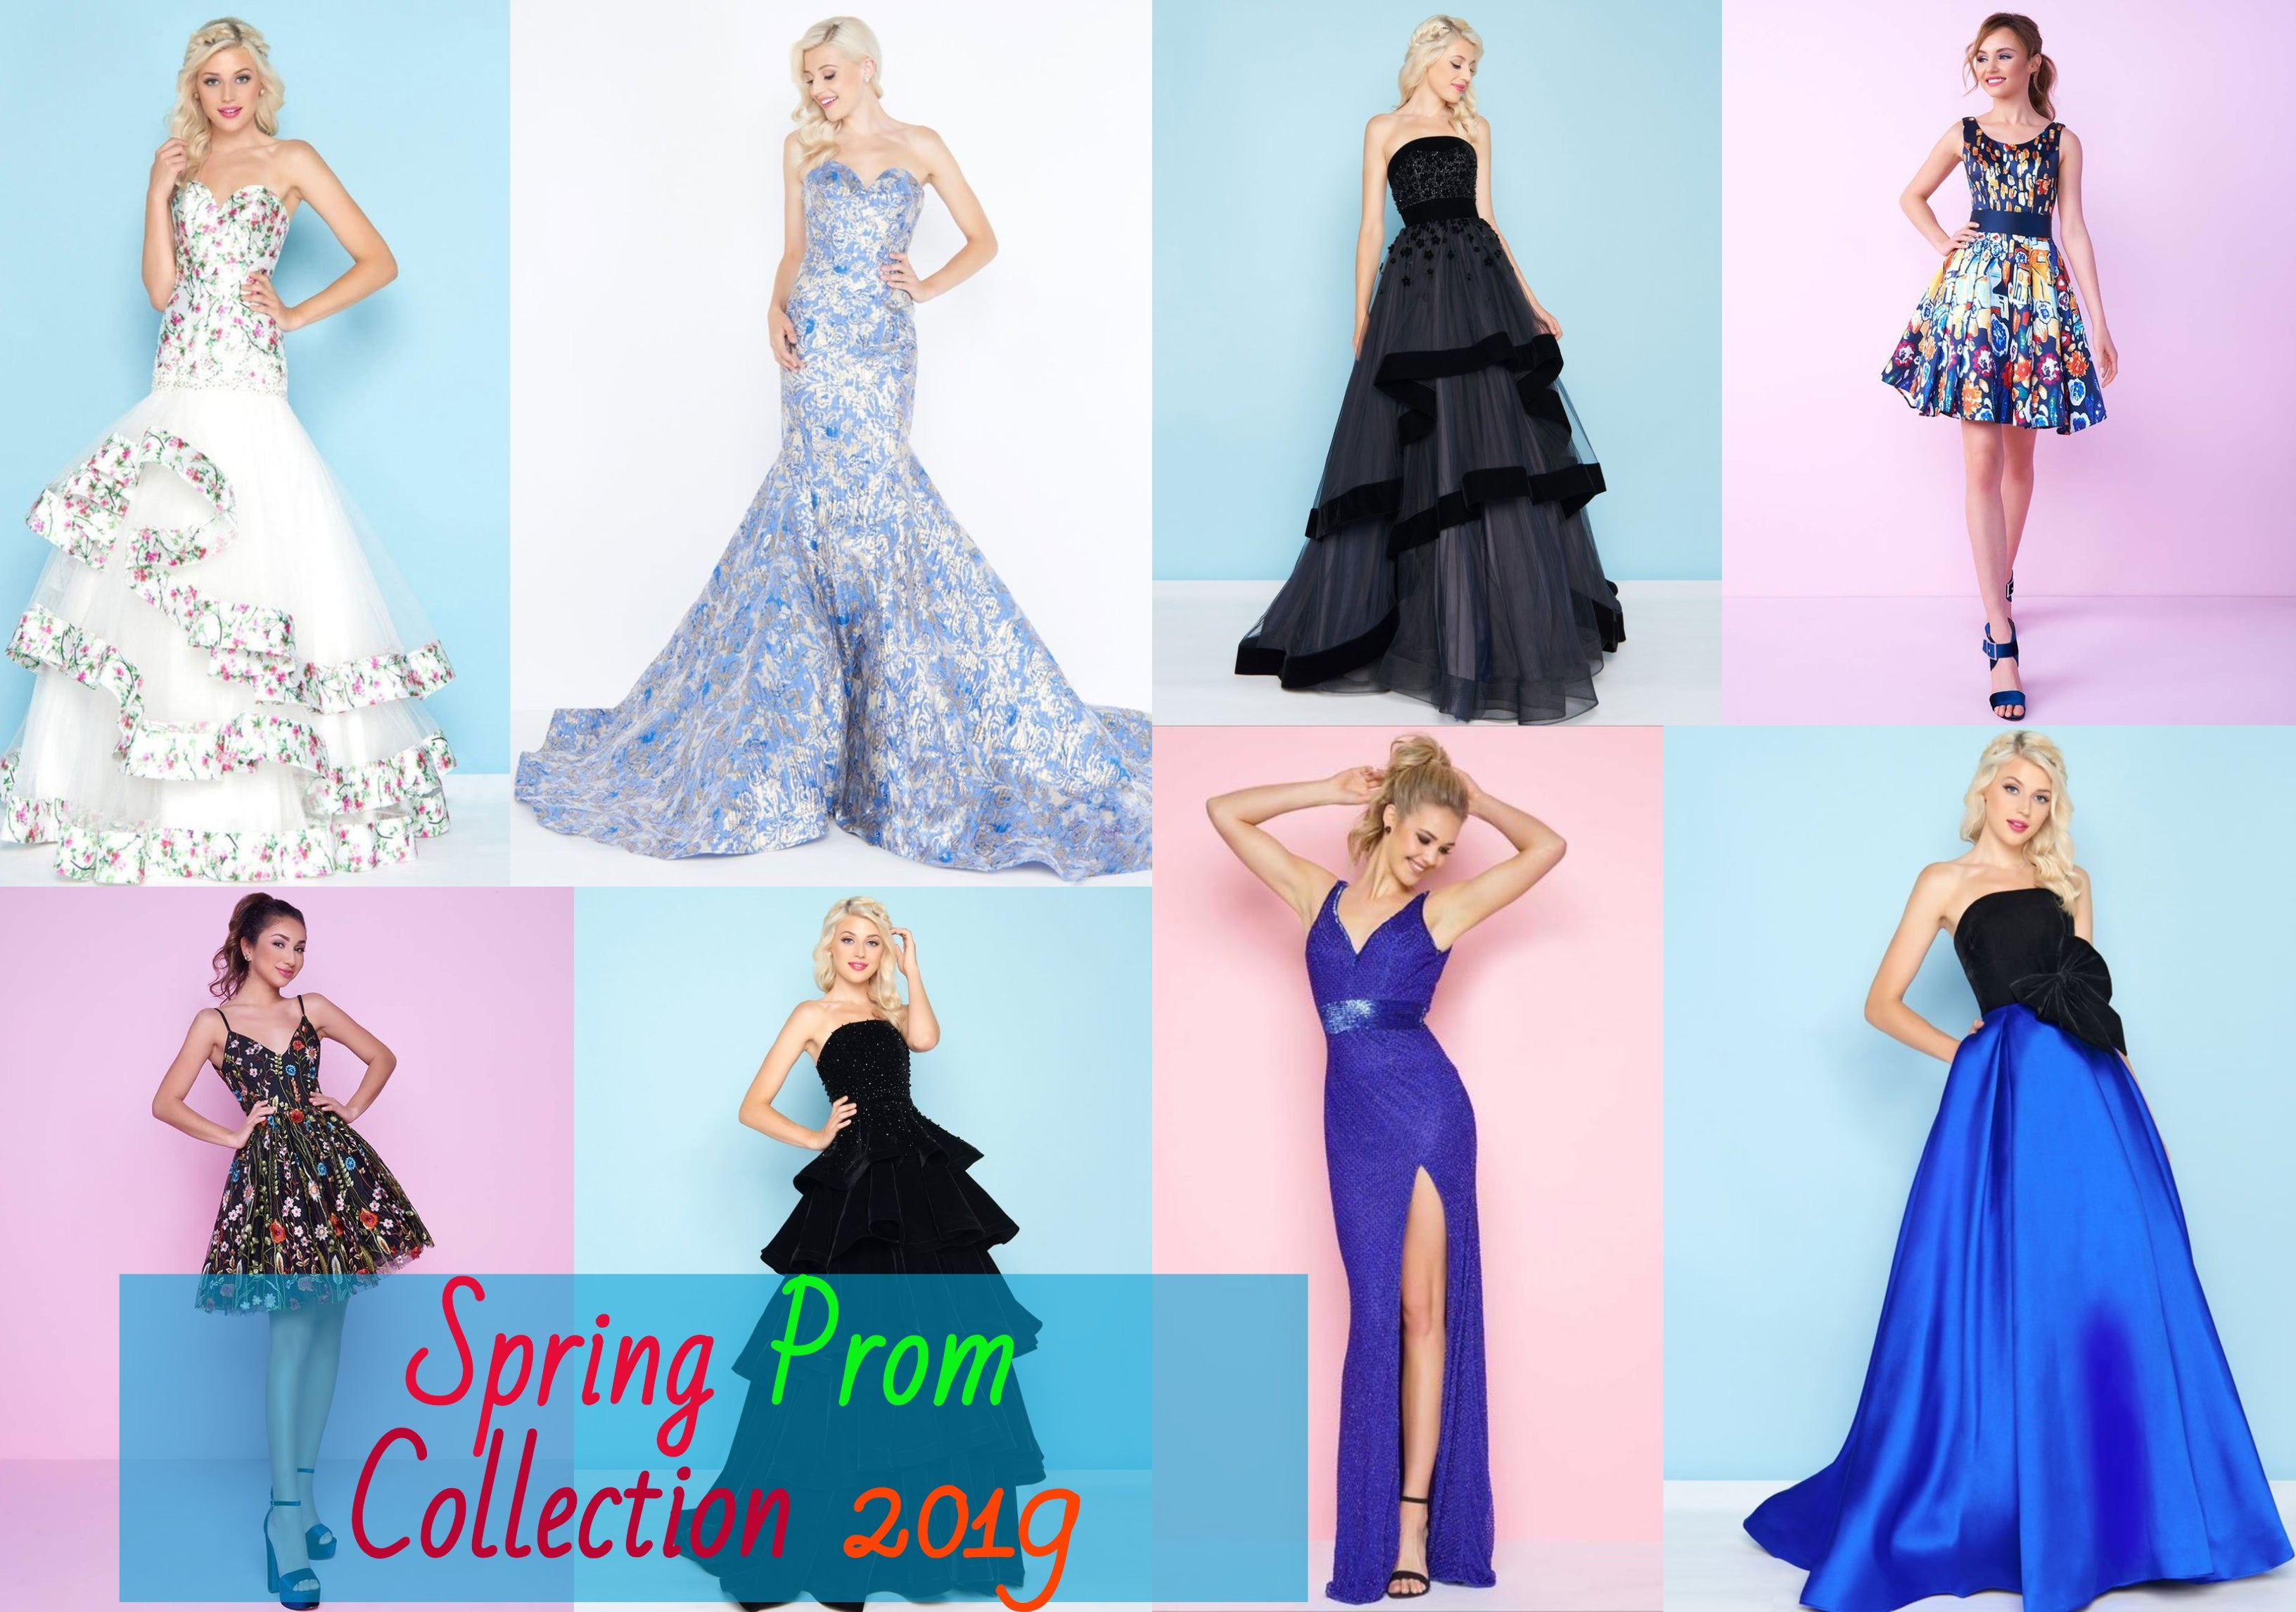 Say Hello To The Spring Season With The Spring Prom Dresses